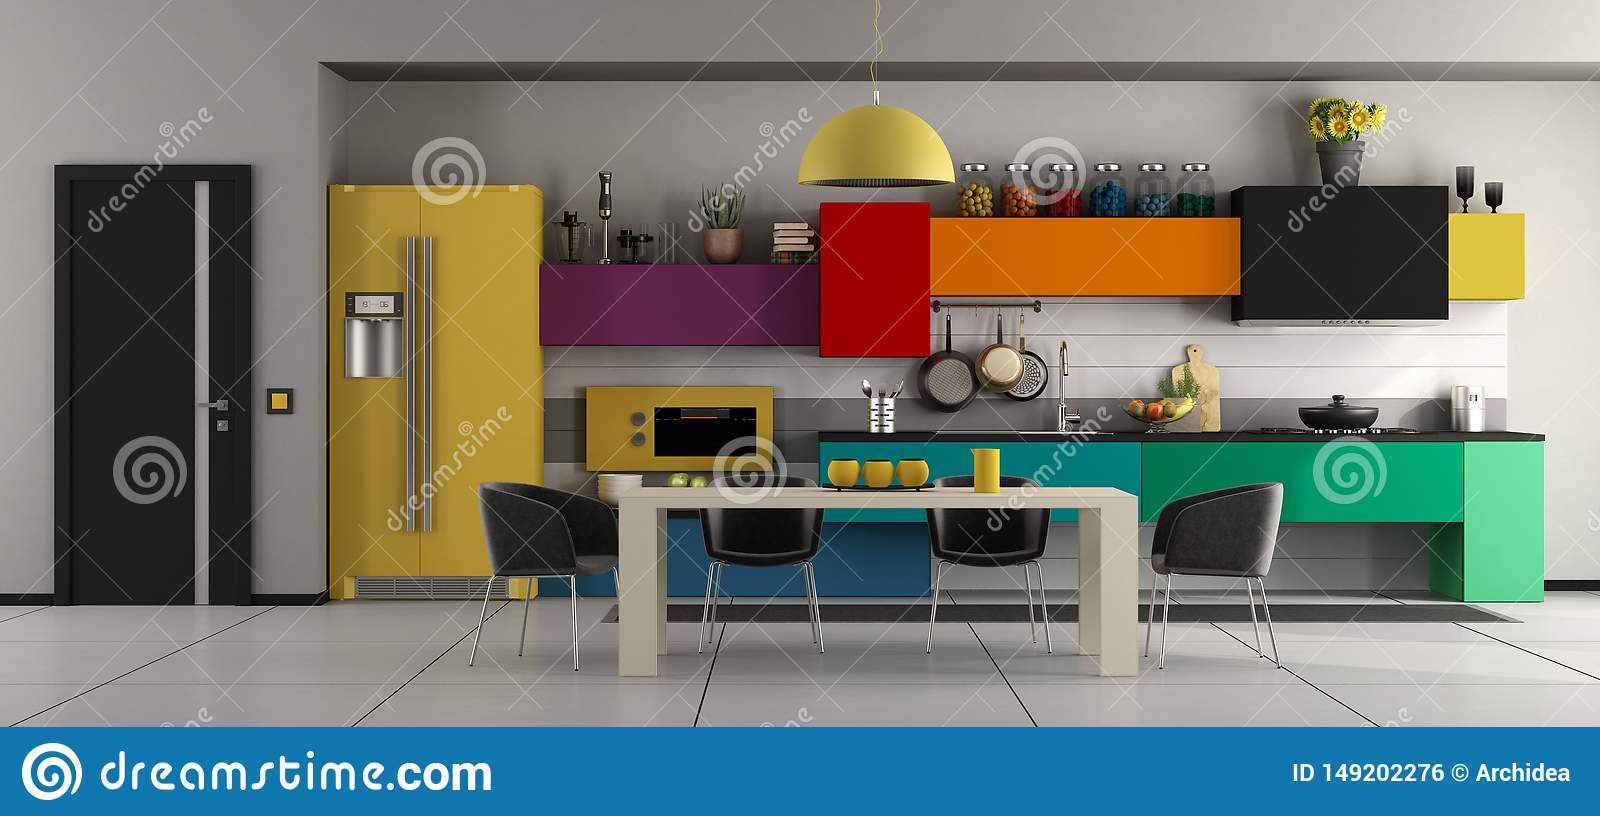 Colorful Modern Kitchen With Table And Chairs Stock Illustration Illustration Of Cooker Green 149202276